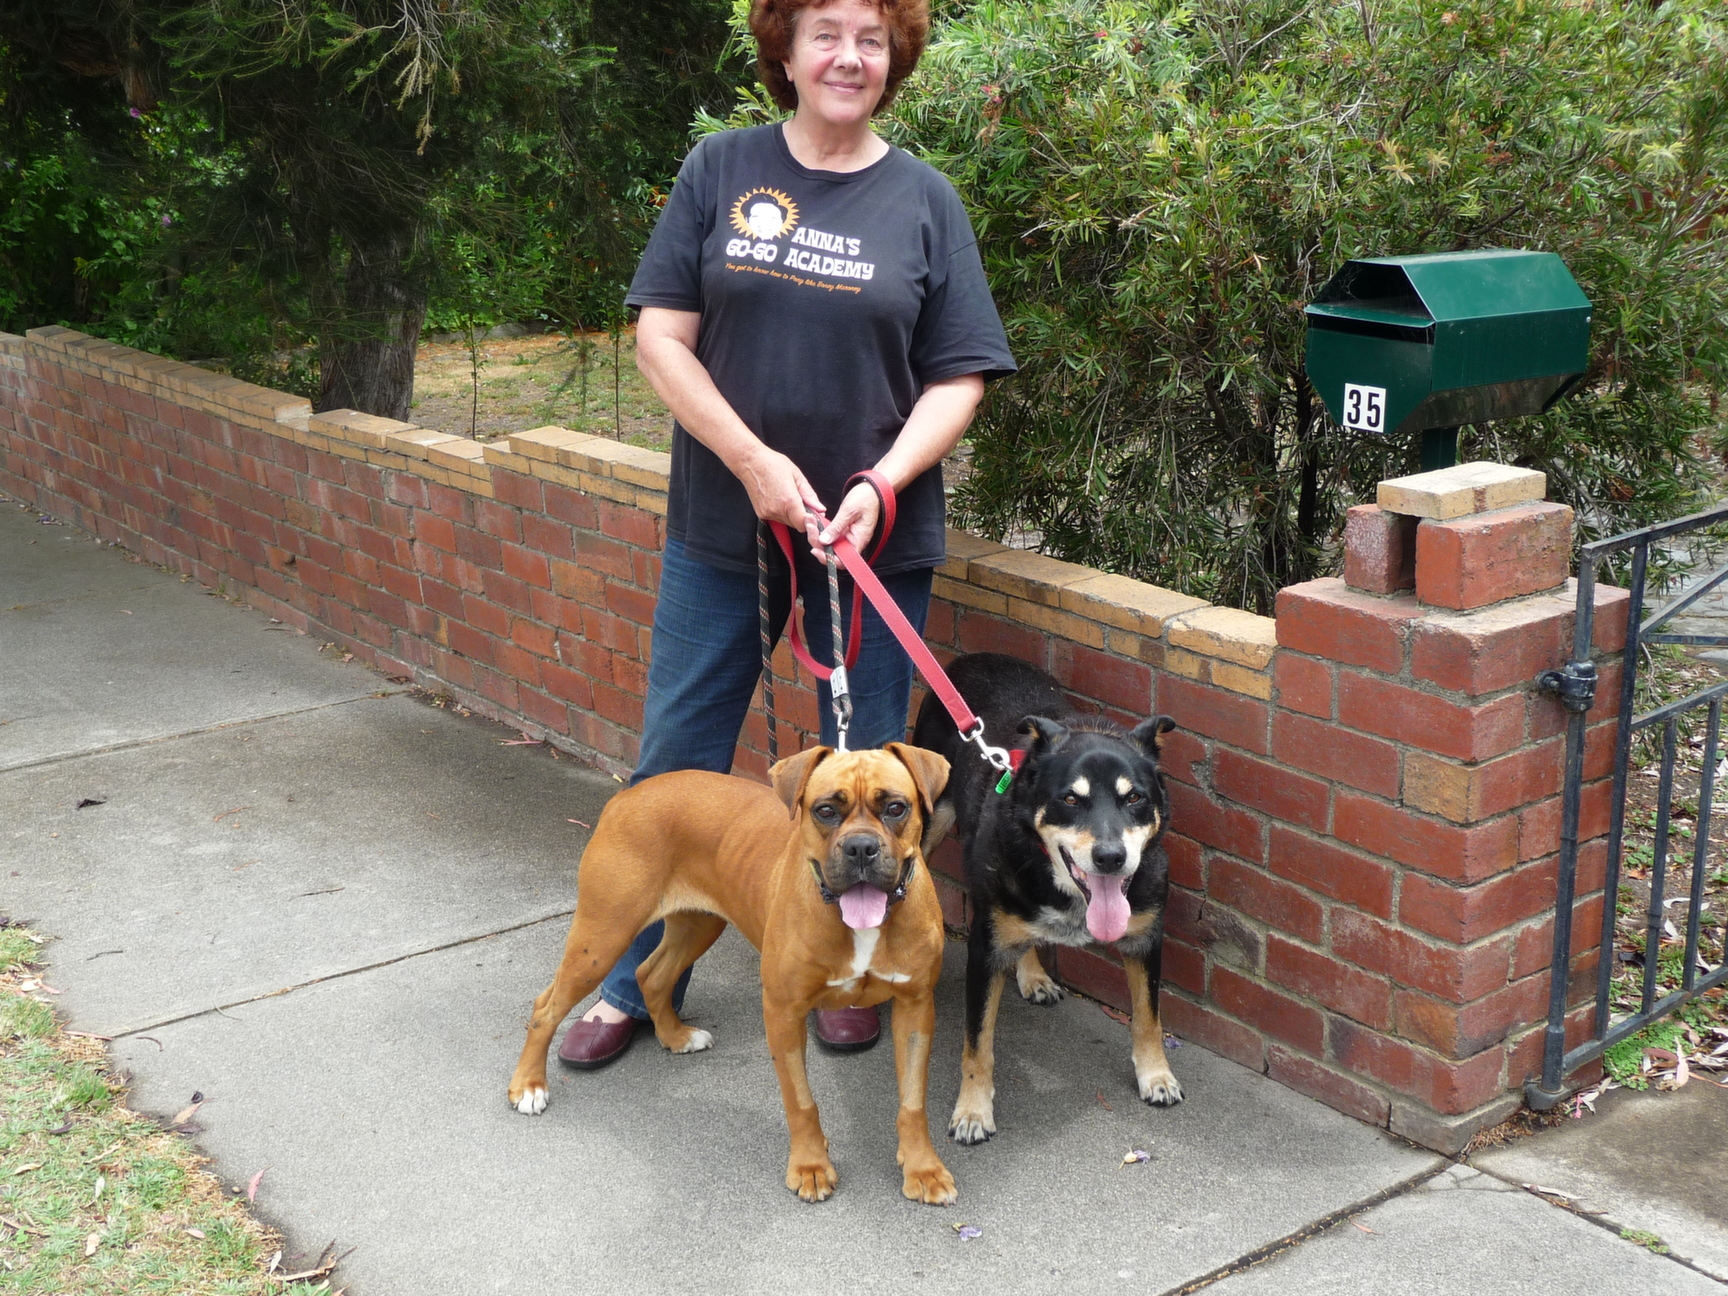 With my beloved dogs, Becky and Bennie